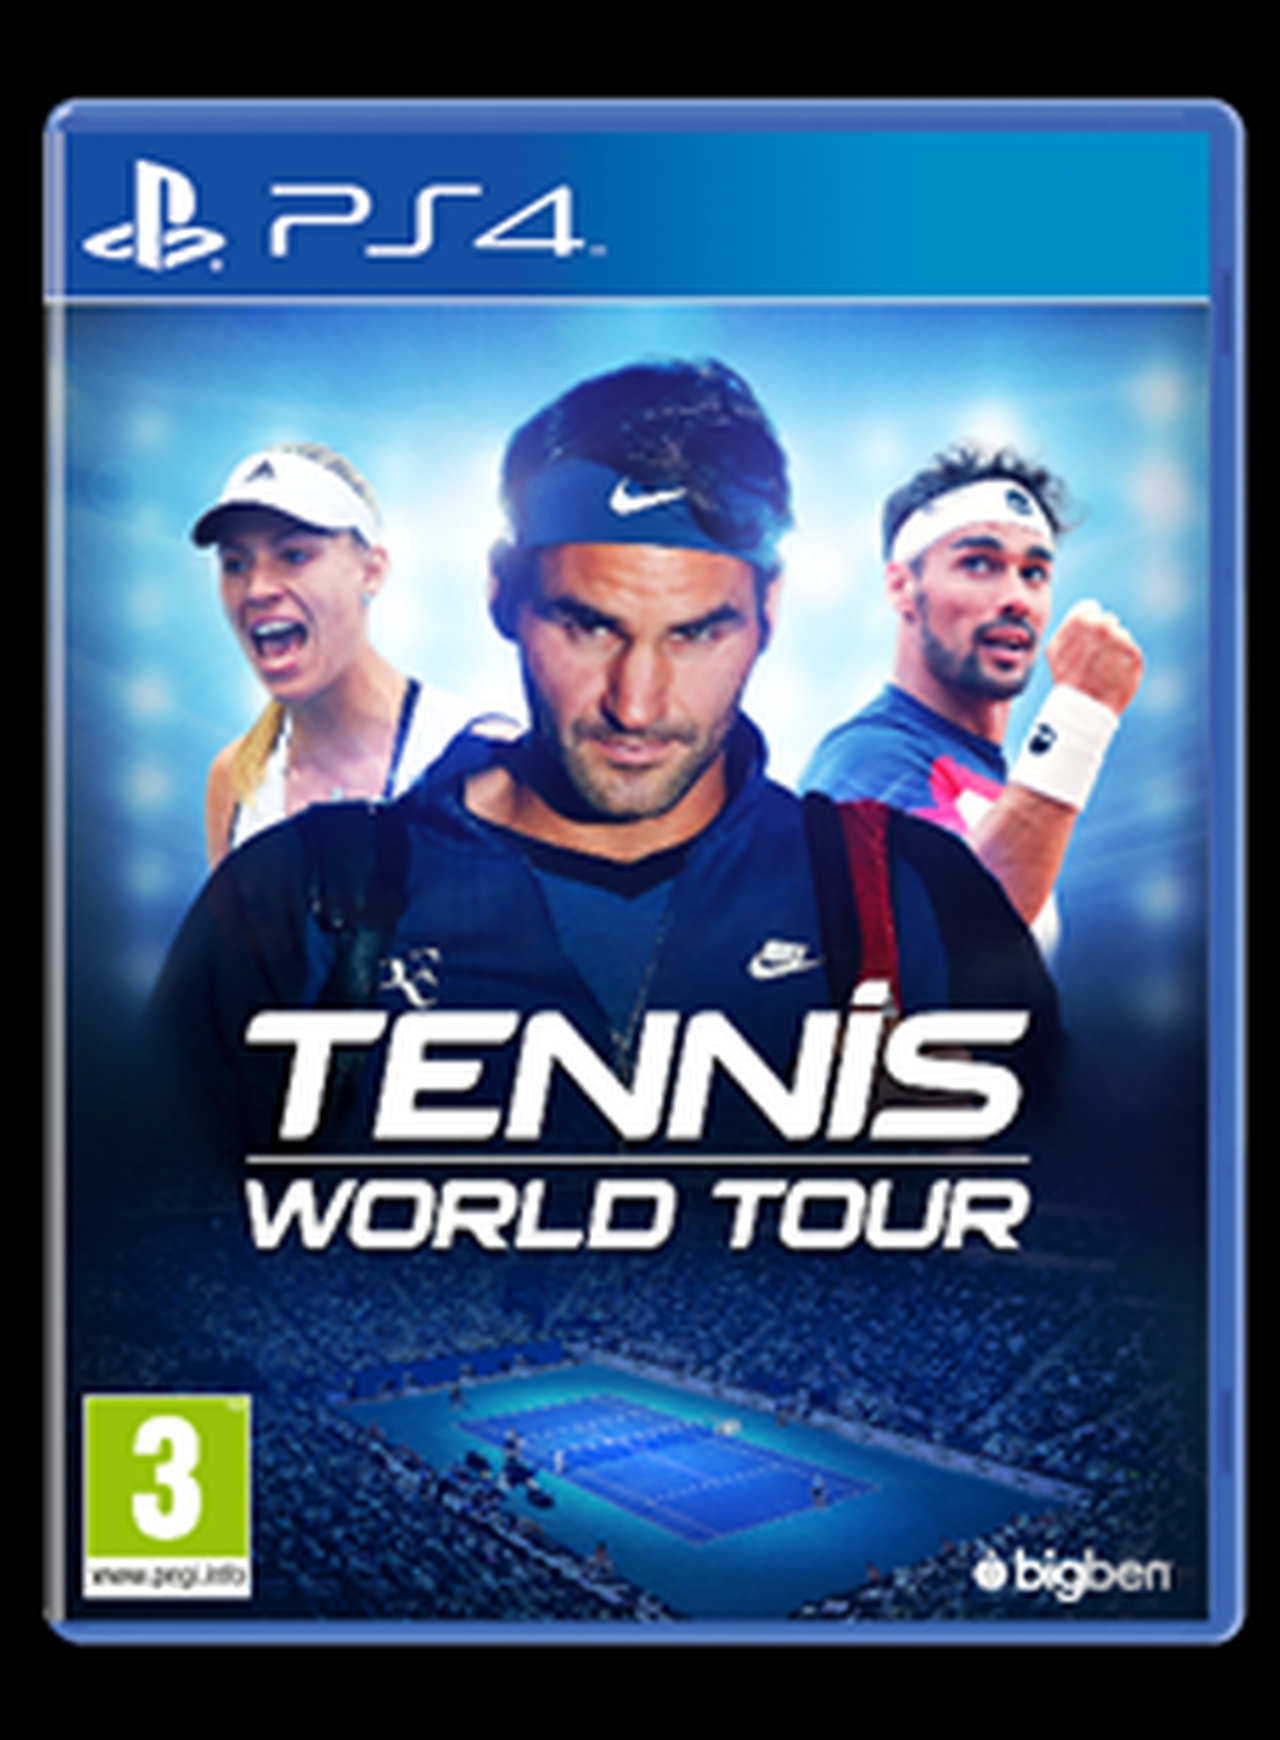 Tennis World Tour: svelata la data d'uscita del titolo tennistico di Breakpoint